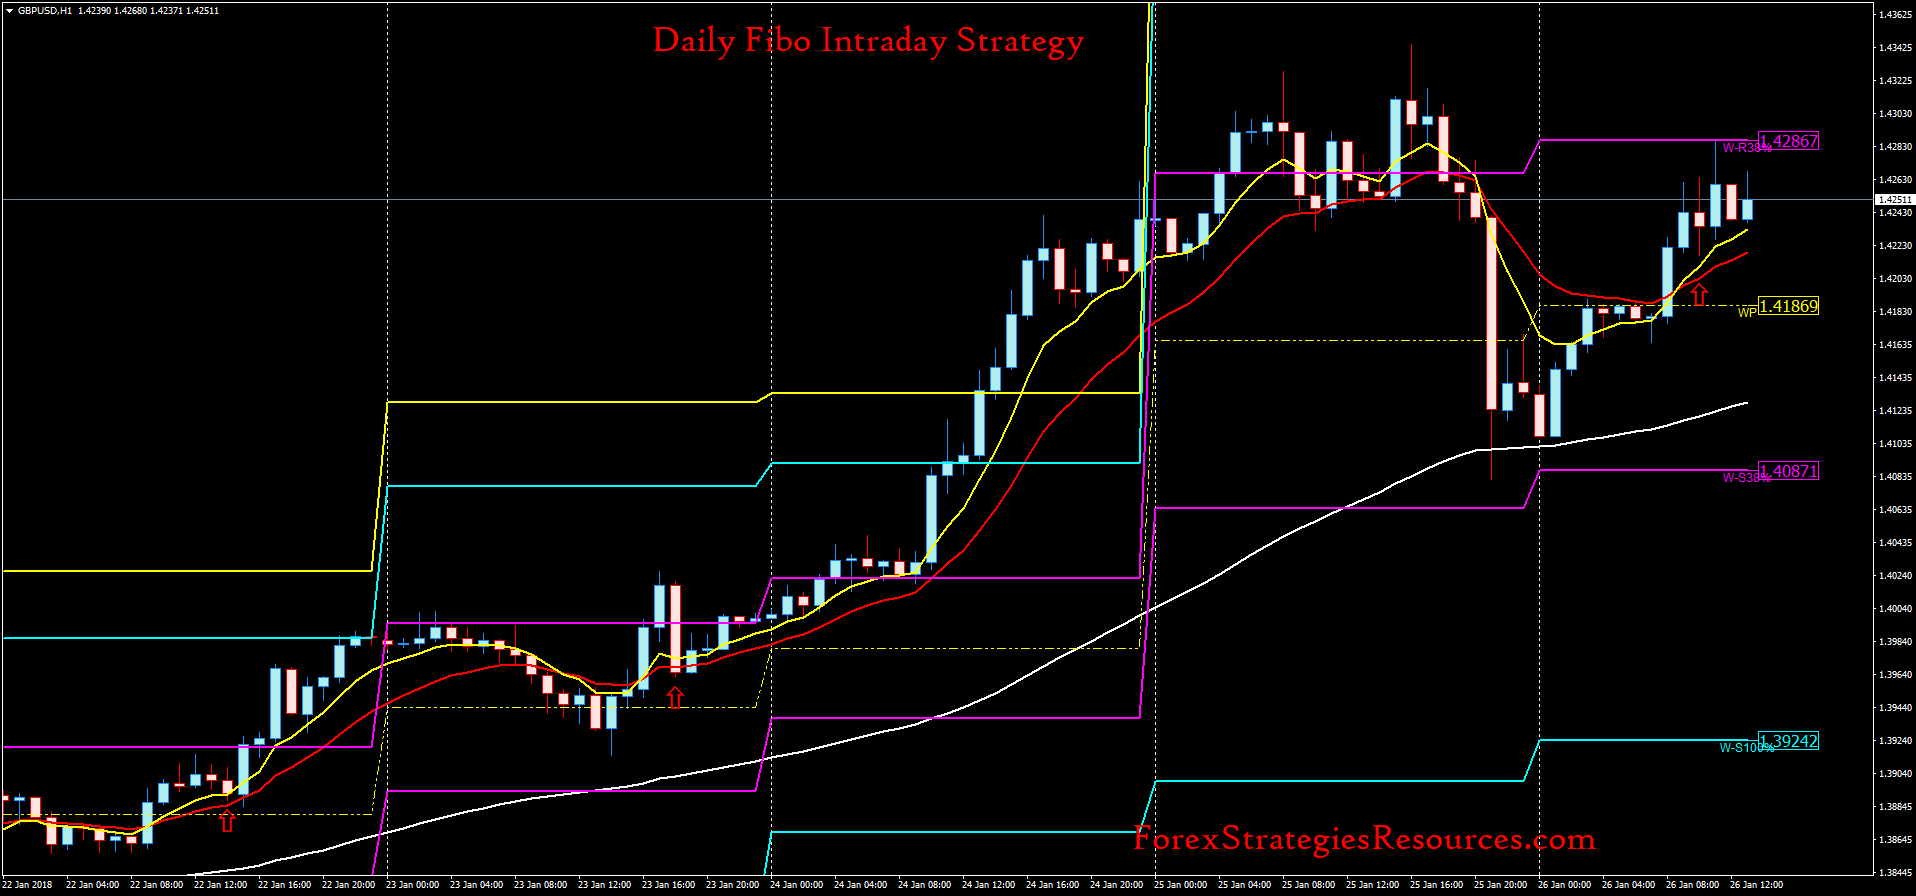 Intraday forex strategy